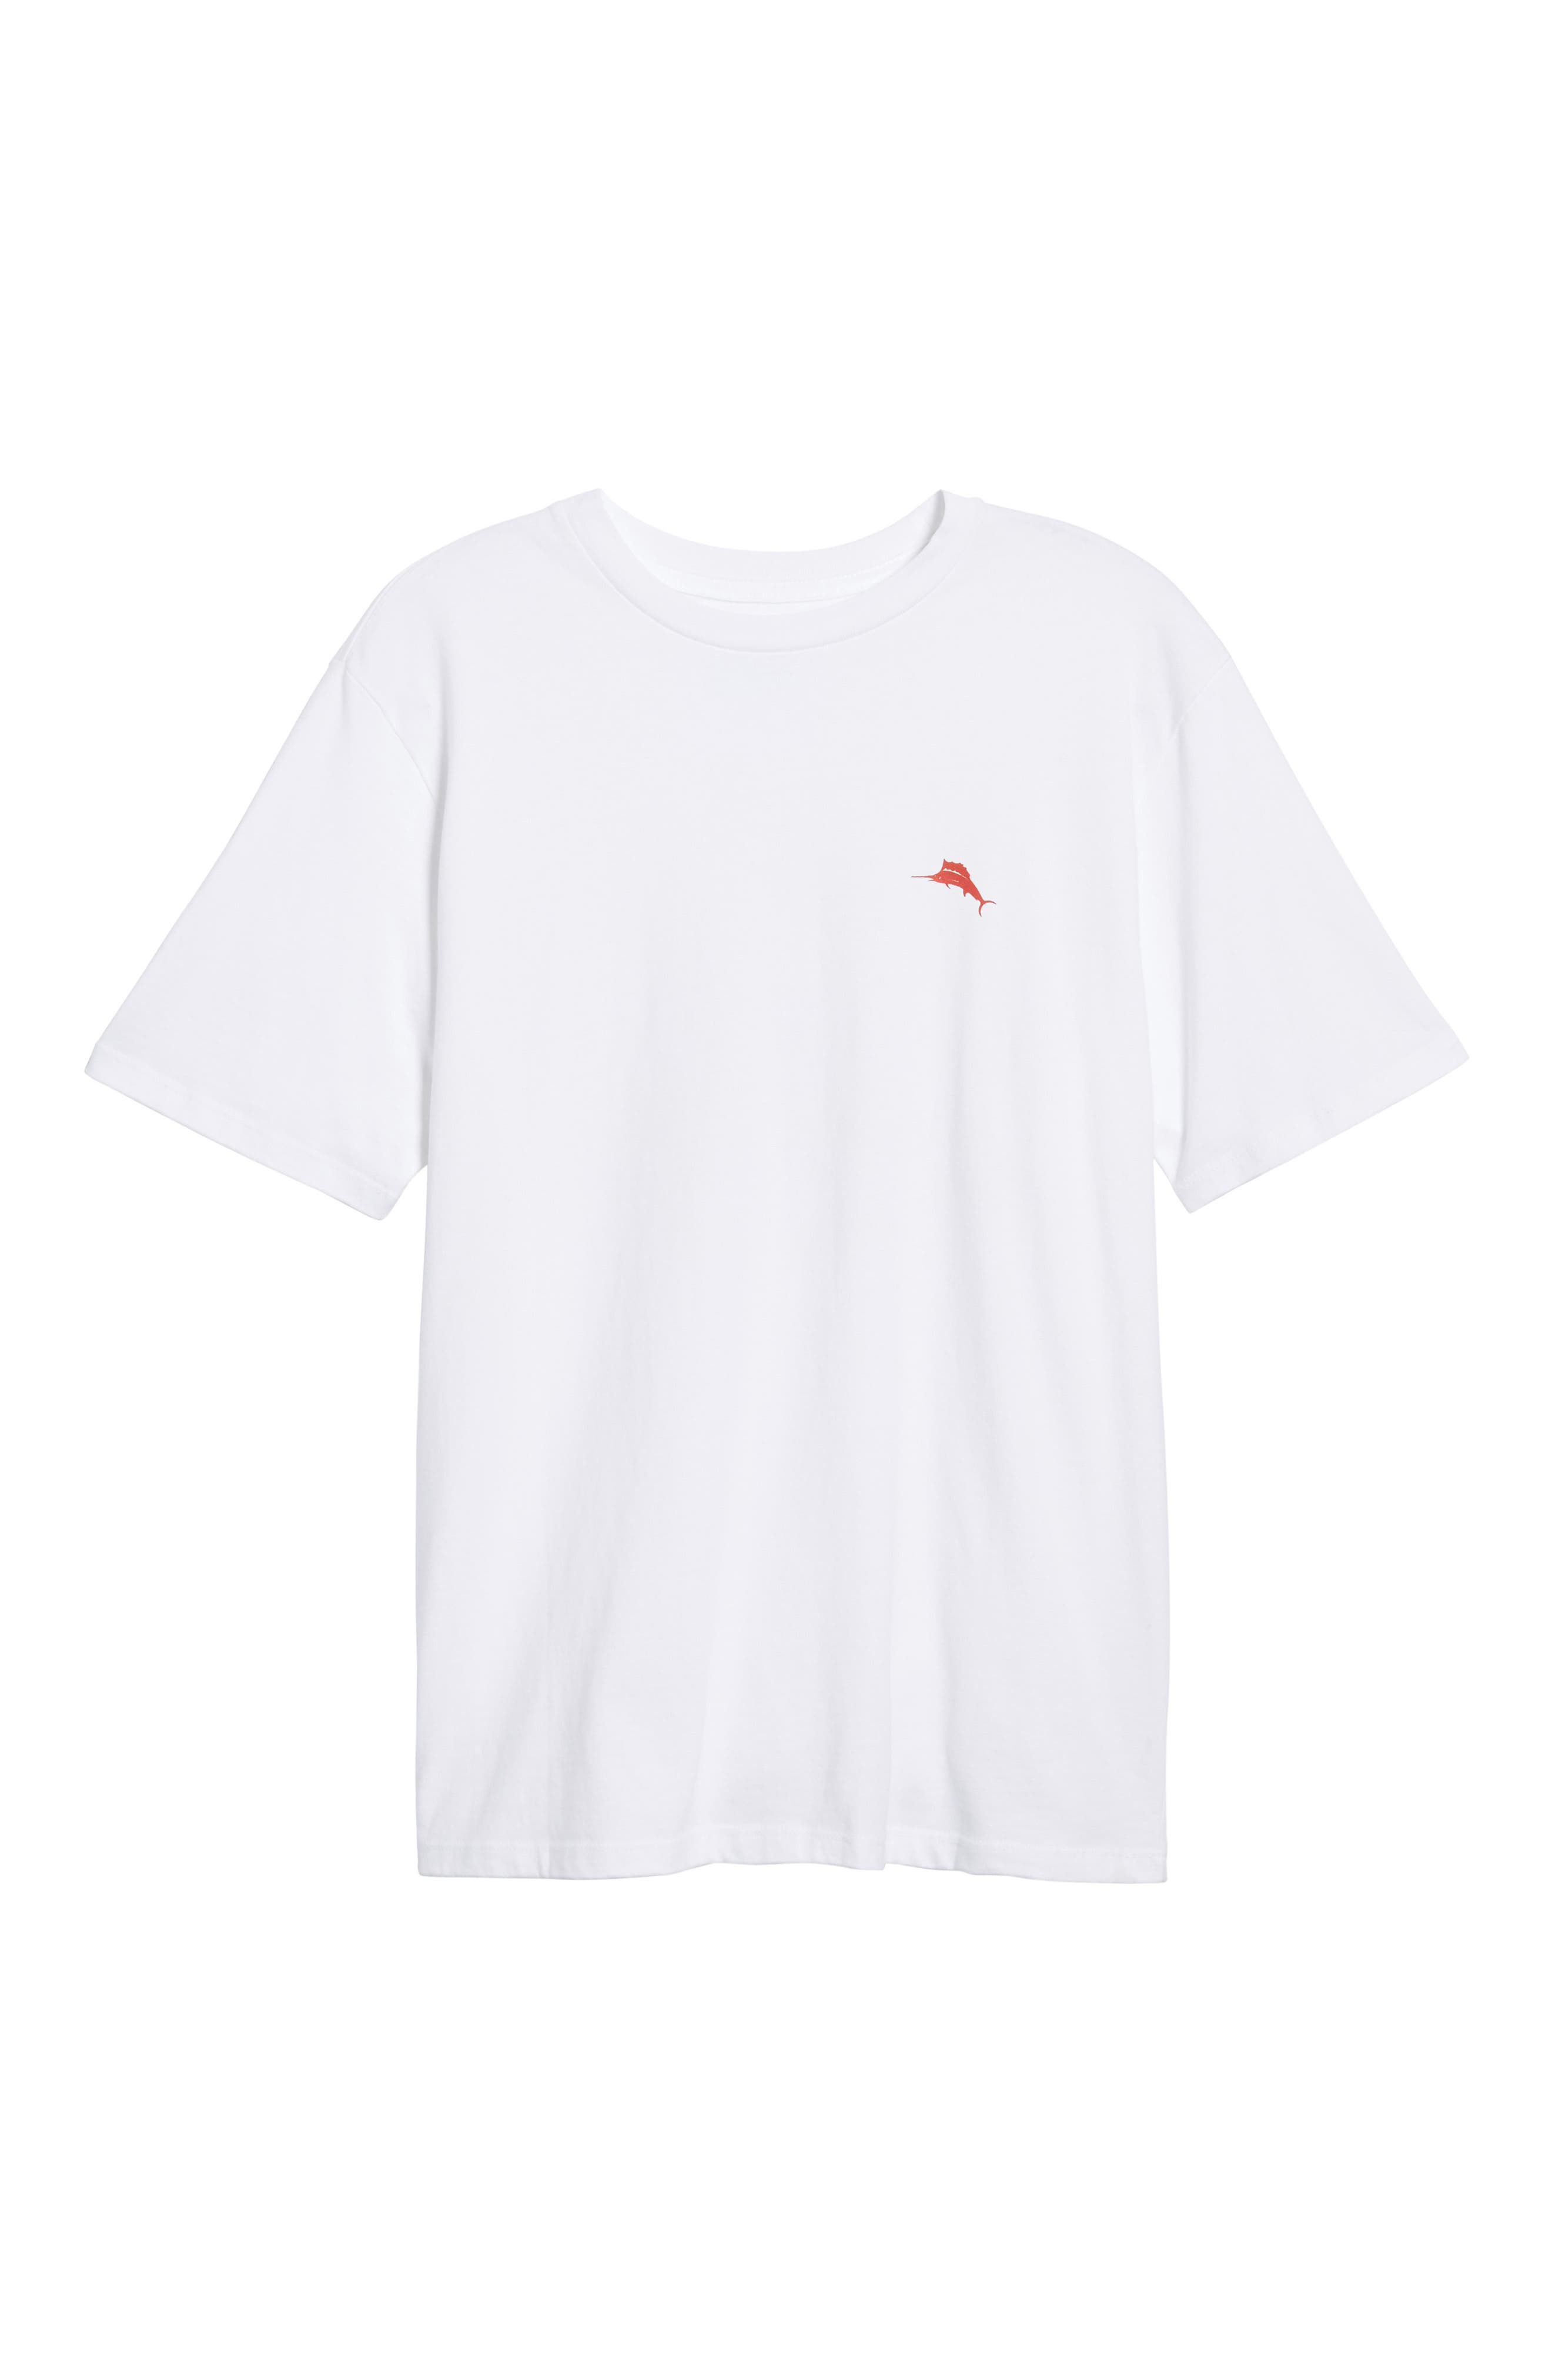 Rum Rum Rudolph T-Shirt,                             Alternate thumbnail 6, color,                             White